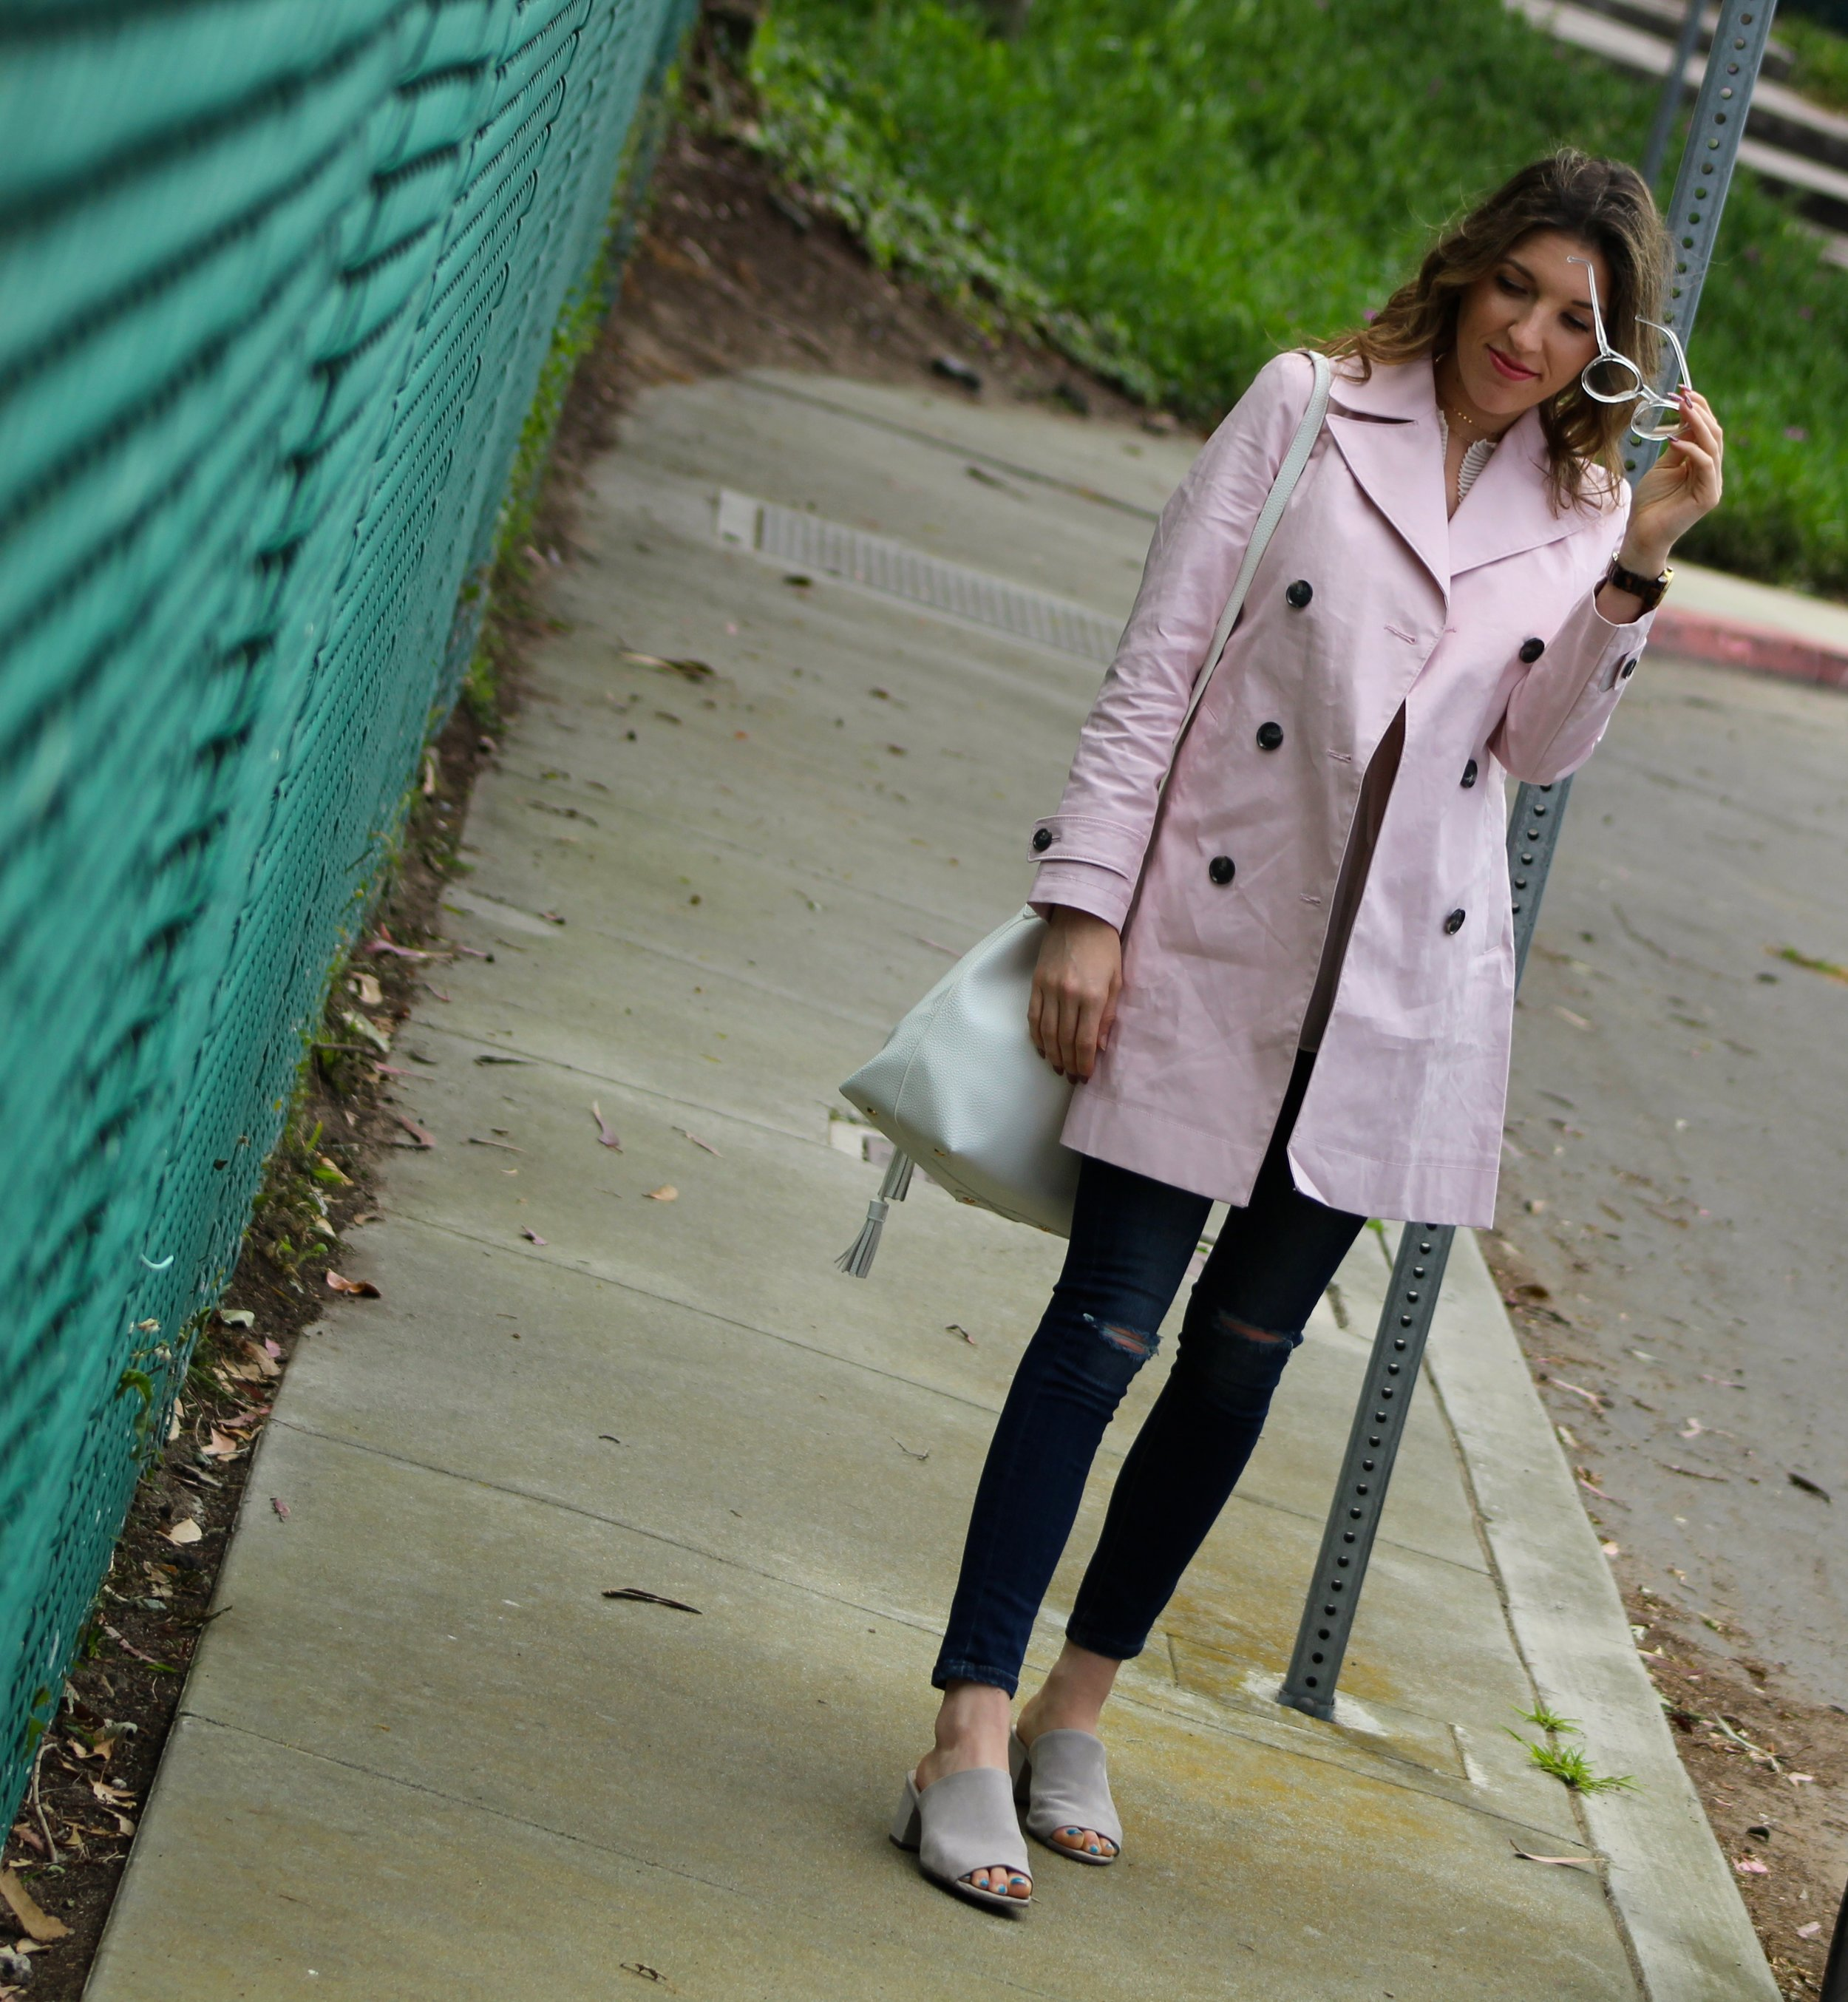 Trench :  Banana Republic //  Top:  F21,  similar here  //  Jeans : Banana Republic,  similar here  //  Shoes:   F21  //  Glasses:   similar here  //  Purse:   F21  //  Necklaces:     F21    Hi friends! Today's post is featuring one of my favorite colors- pink! This trench is in the loveliest shade. The color of this trench is such a soft baby pink and it compliments many other colors. Of course a perfect color for Spring. I love that pink has become a new neutral.This coat is clearly the star of this look. Looking at the links above, you can see that other than my coat, jeans, and glasses, the rest of this outfit is from  Forever21 . Lately I have been finding the best stuff there! I love when that happens! I have to shop online to purchase their clothing because I get overwhelmed by the big stores.Does anyone else feel like this? Anyway, I love this look! It is a totally cool and casual look but still scores major street style points. I really like the color combos in this look as well. The pink, white, and grey all play so nicely with one another. Like I said in a previous post last week, I am all about glasses right now! I think many other people are as well. I am seeing more and more yellow sunnies popping up! Glasses to me, just add an instant cool factor to any look. I've got a lot of new posts coming soon so keep checking back and make sure to follow my Instagram to see my daily looks. I hope you all have the best day!!!!  ~ Nicole